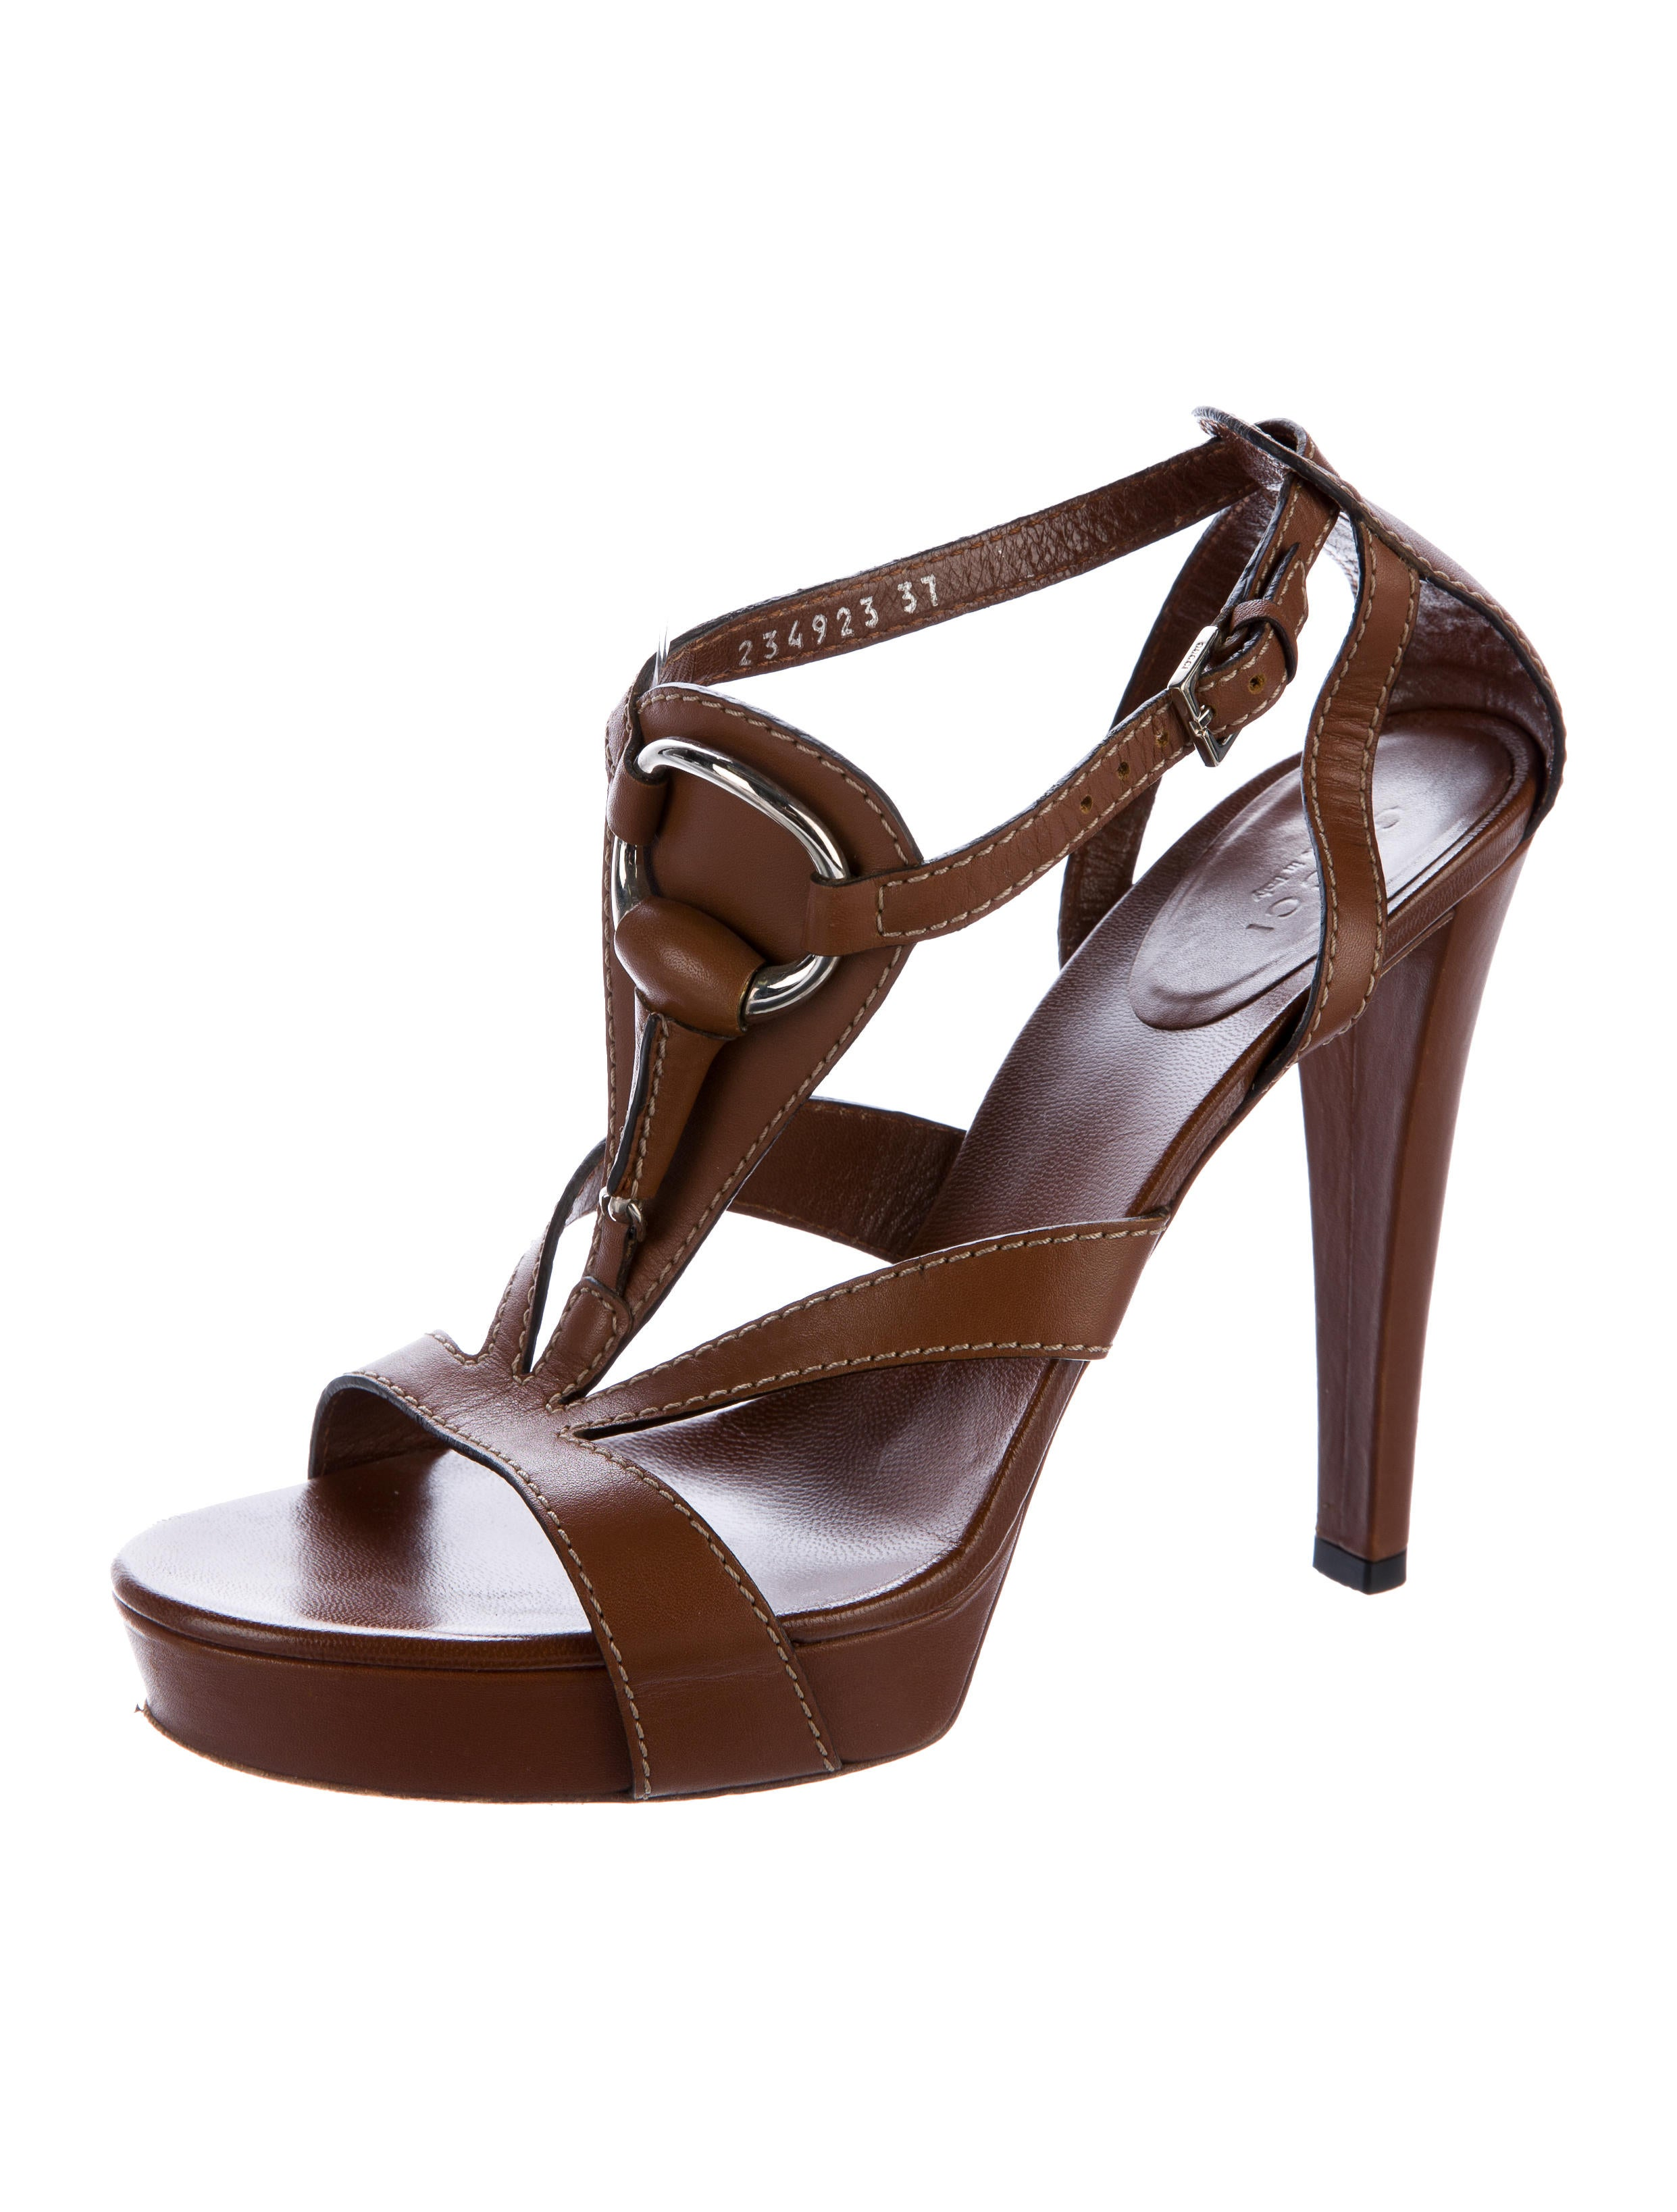 Gucci Leather Horsebit Sandals - Shoes - GUC153907 | The ...